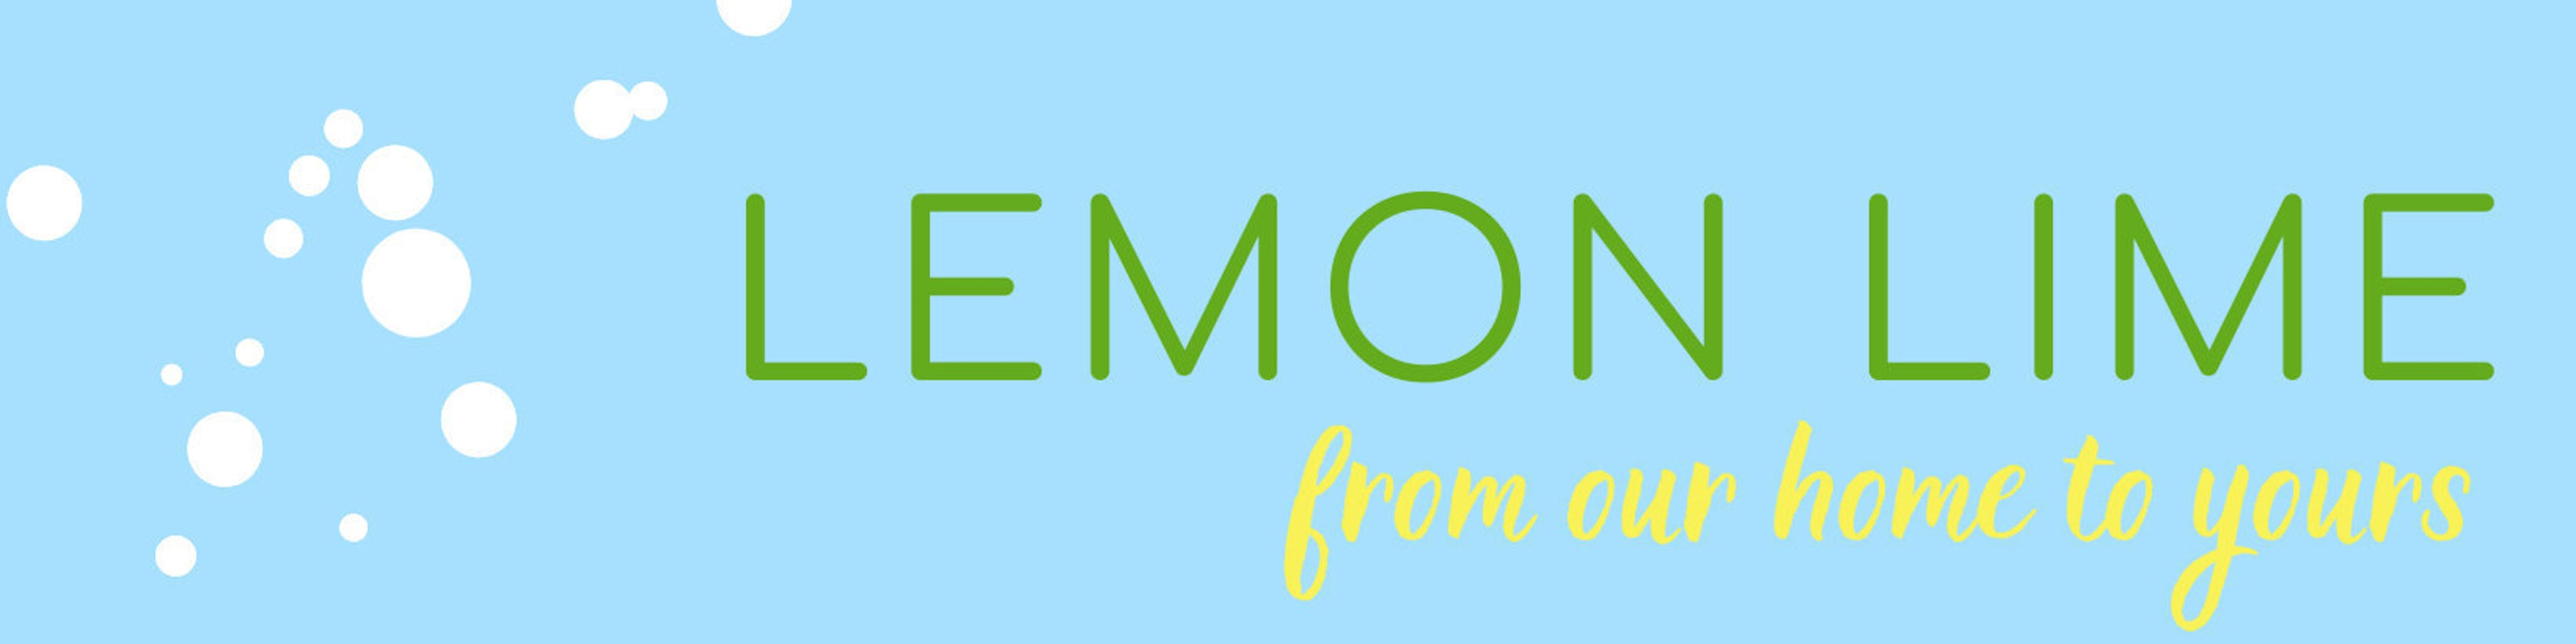 Lemon Lime: From our home to yours